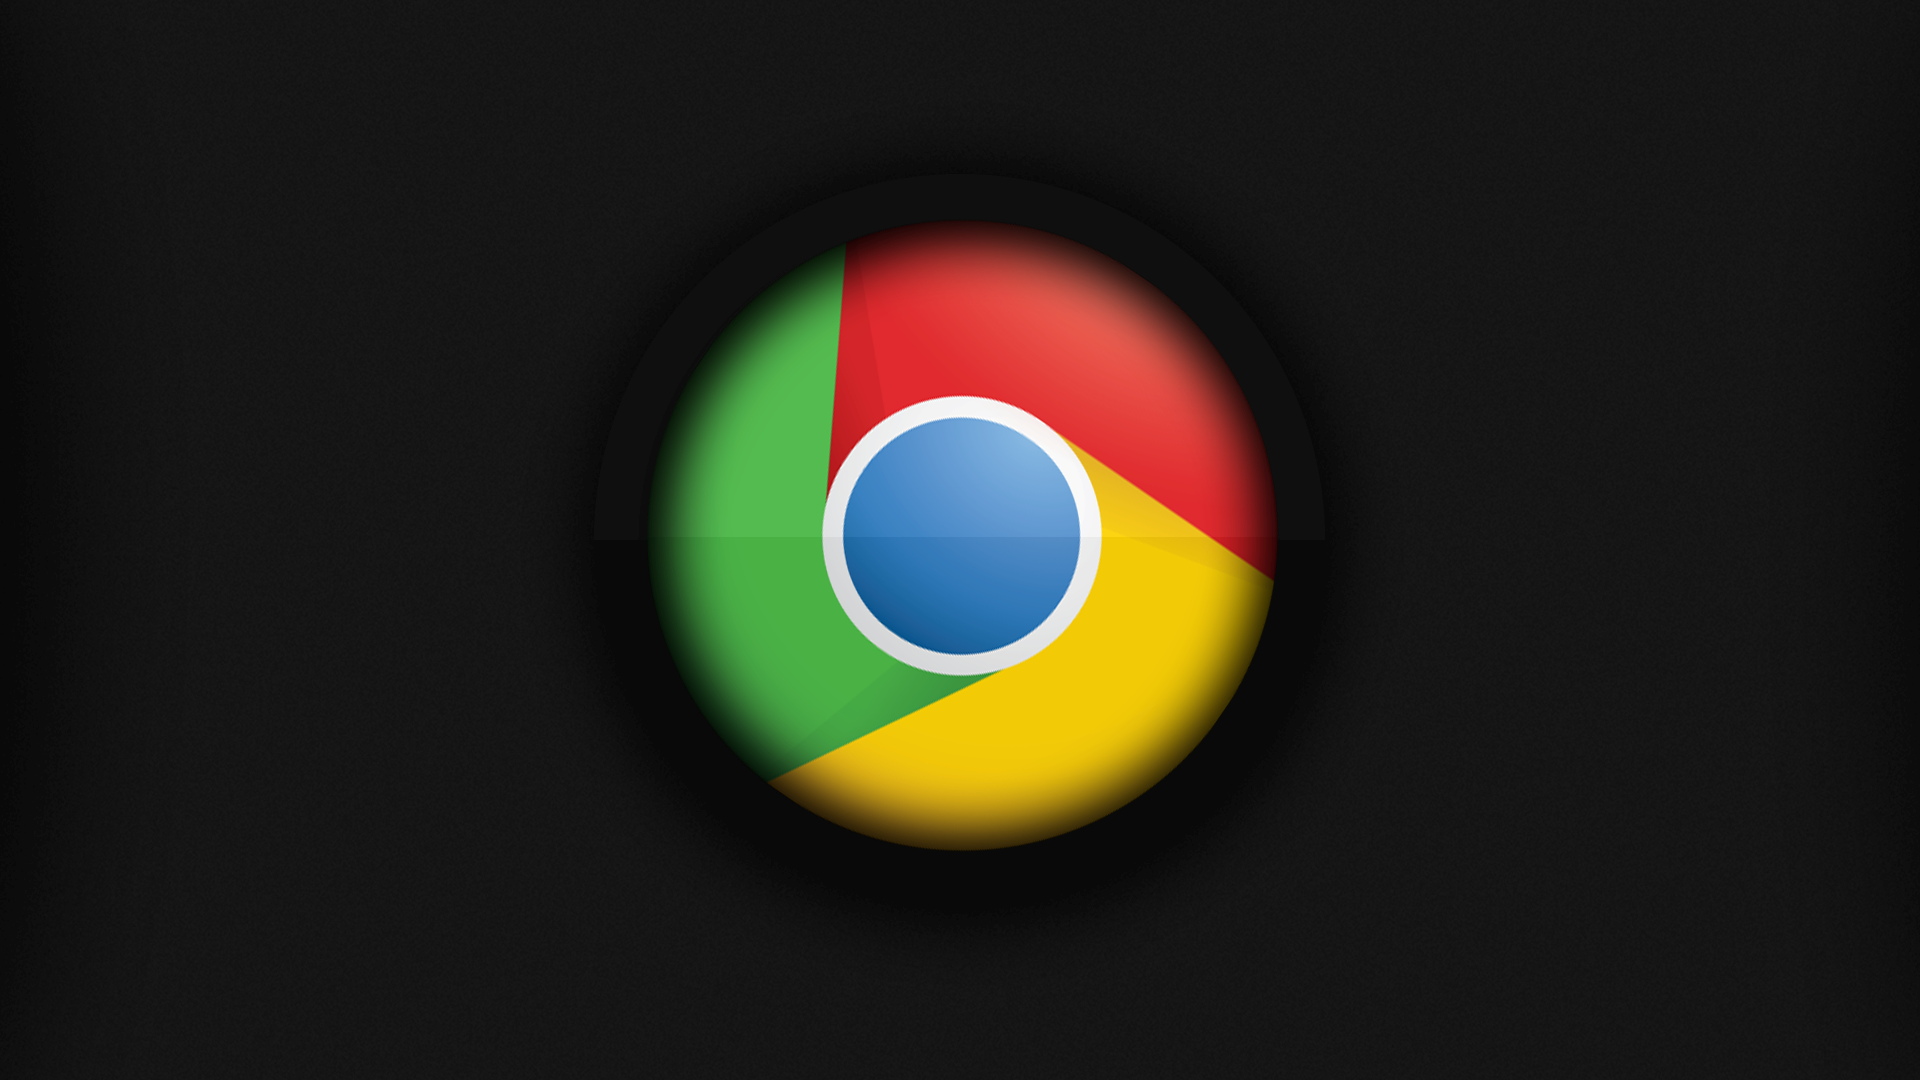 1920x1080px Google Chrome Wallpaper Themes - WallpaperSafari